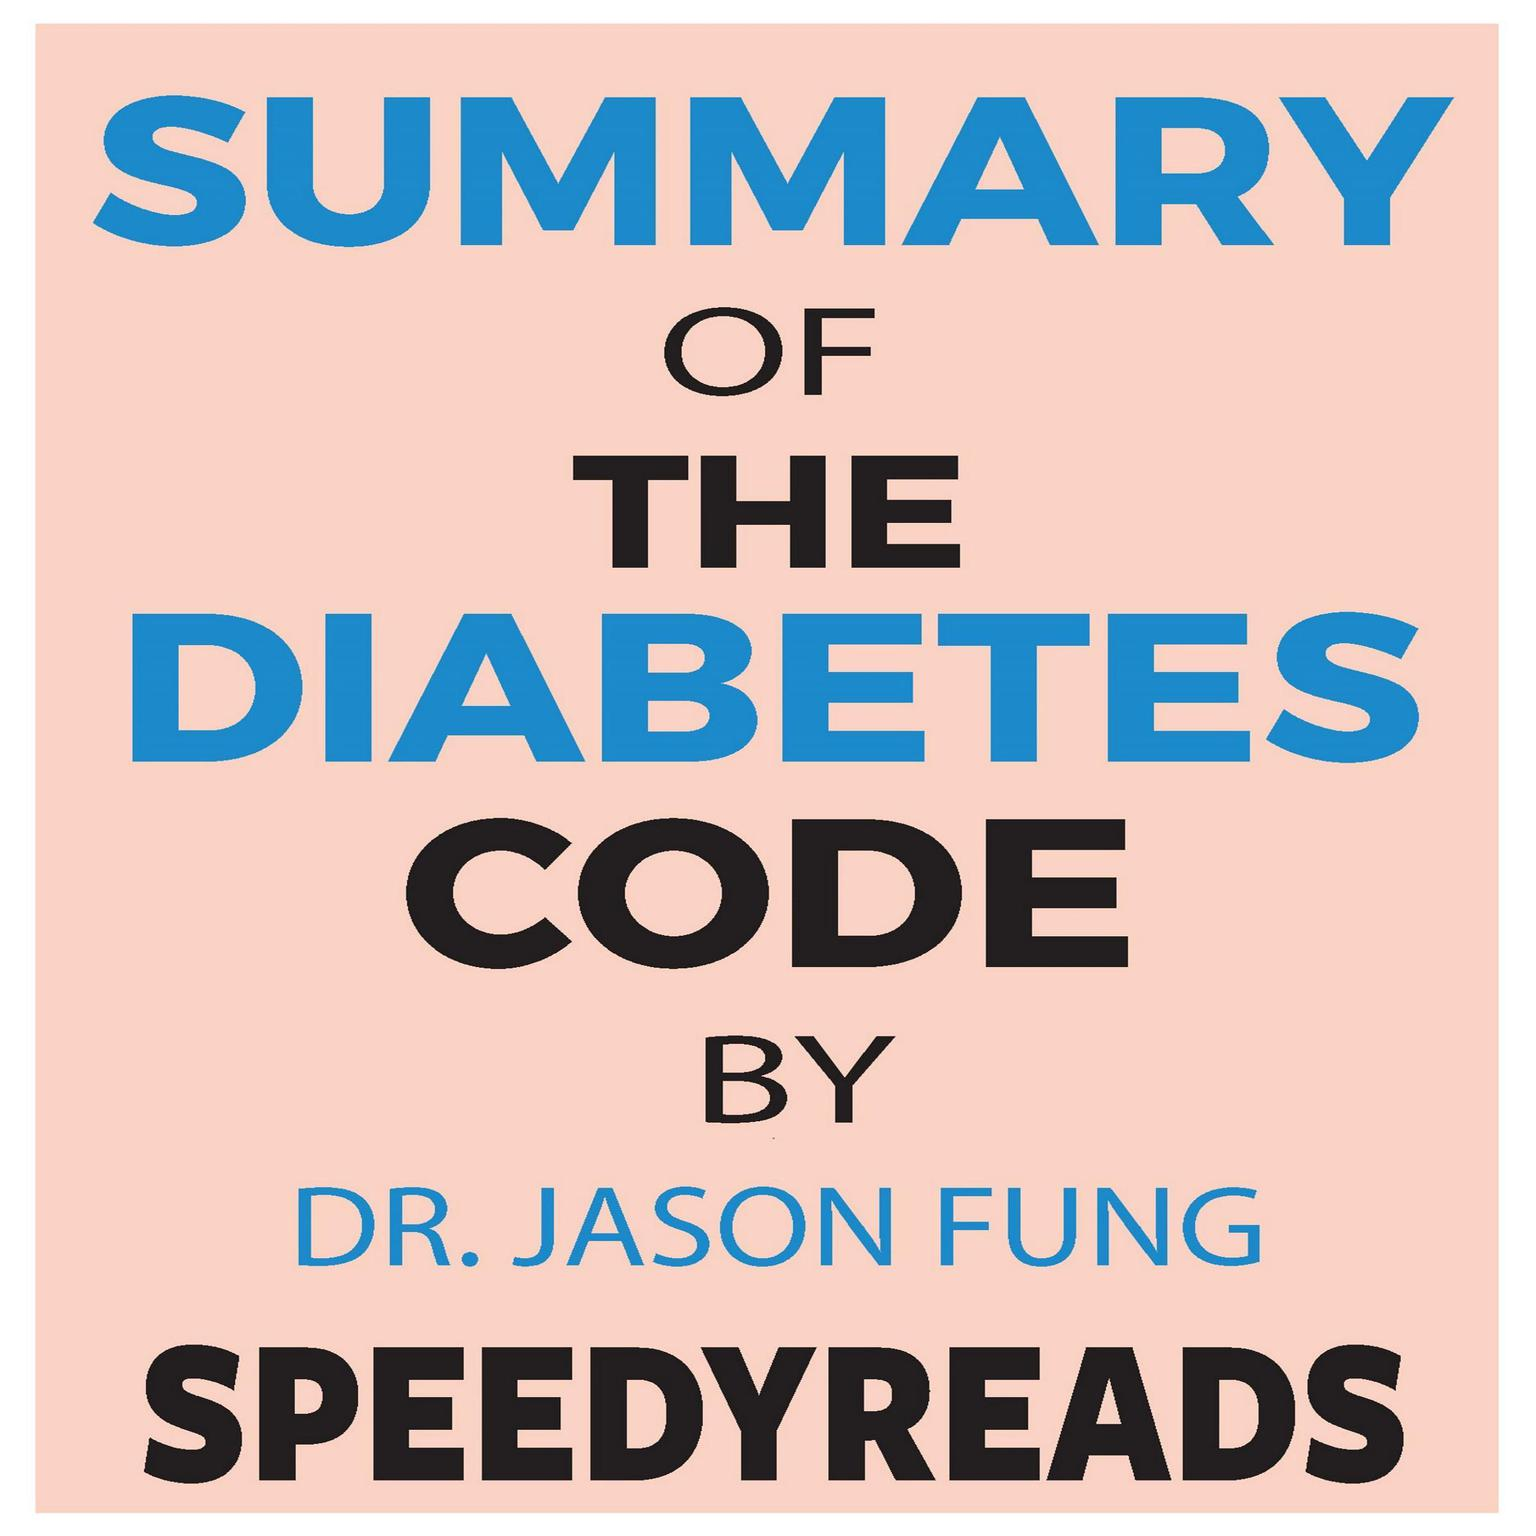 Printable Summary of The Diabetes Code: Prevent and Reverse Type 2 Diabetes Naturally by Jason Fung- Finish Entire Book in 15 Minutes Audiobook Cover Art